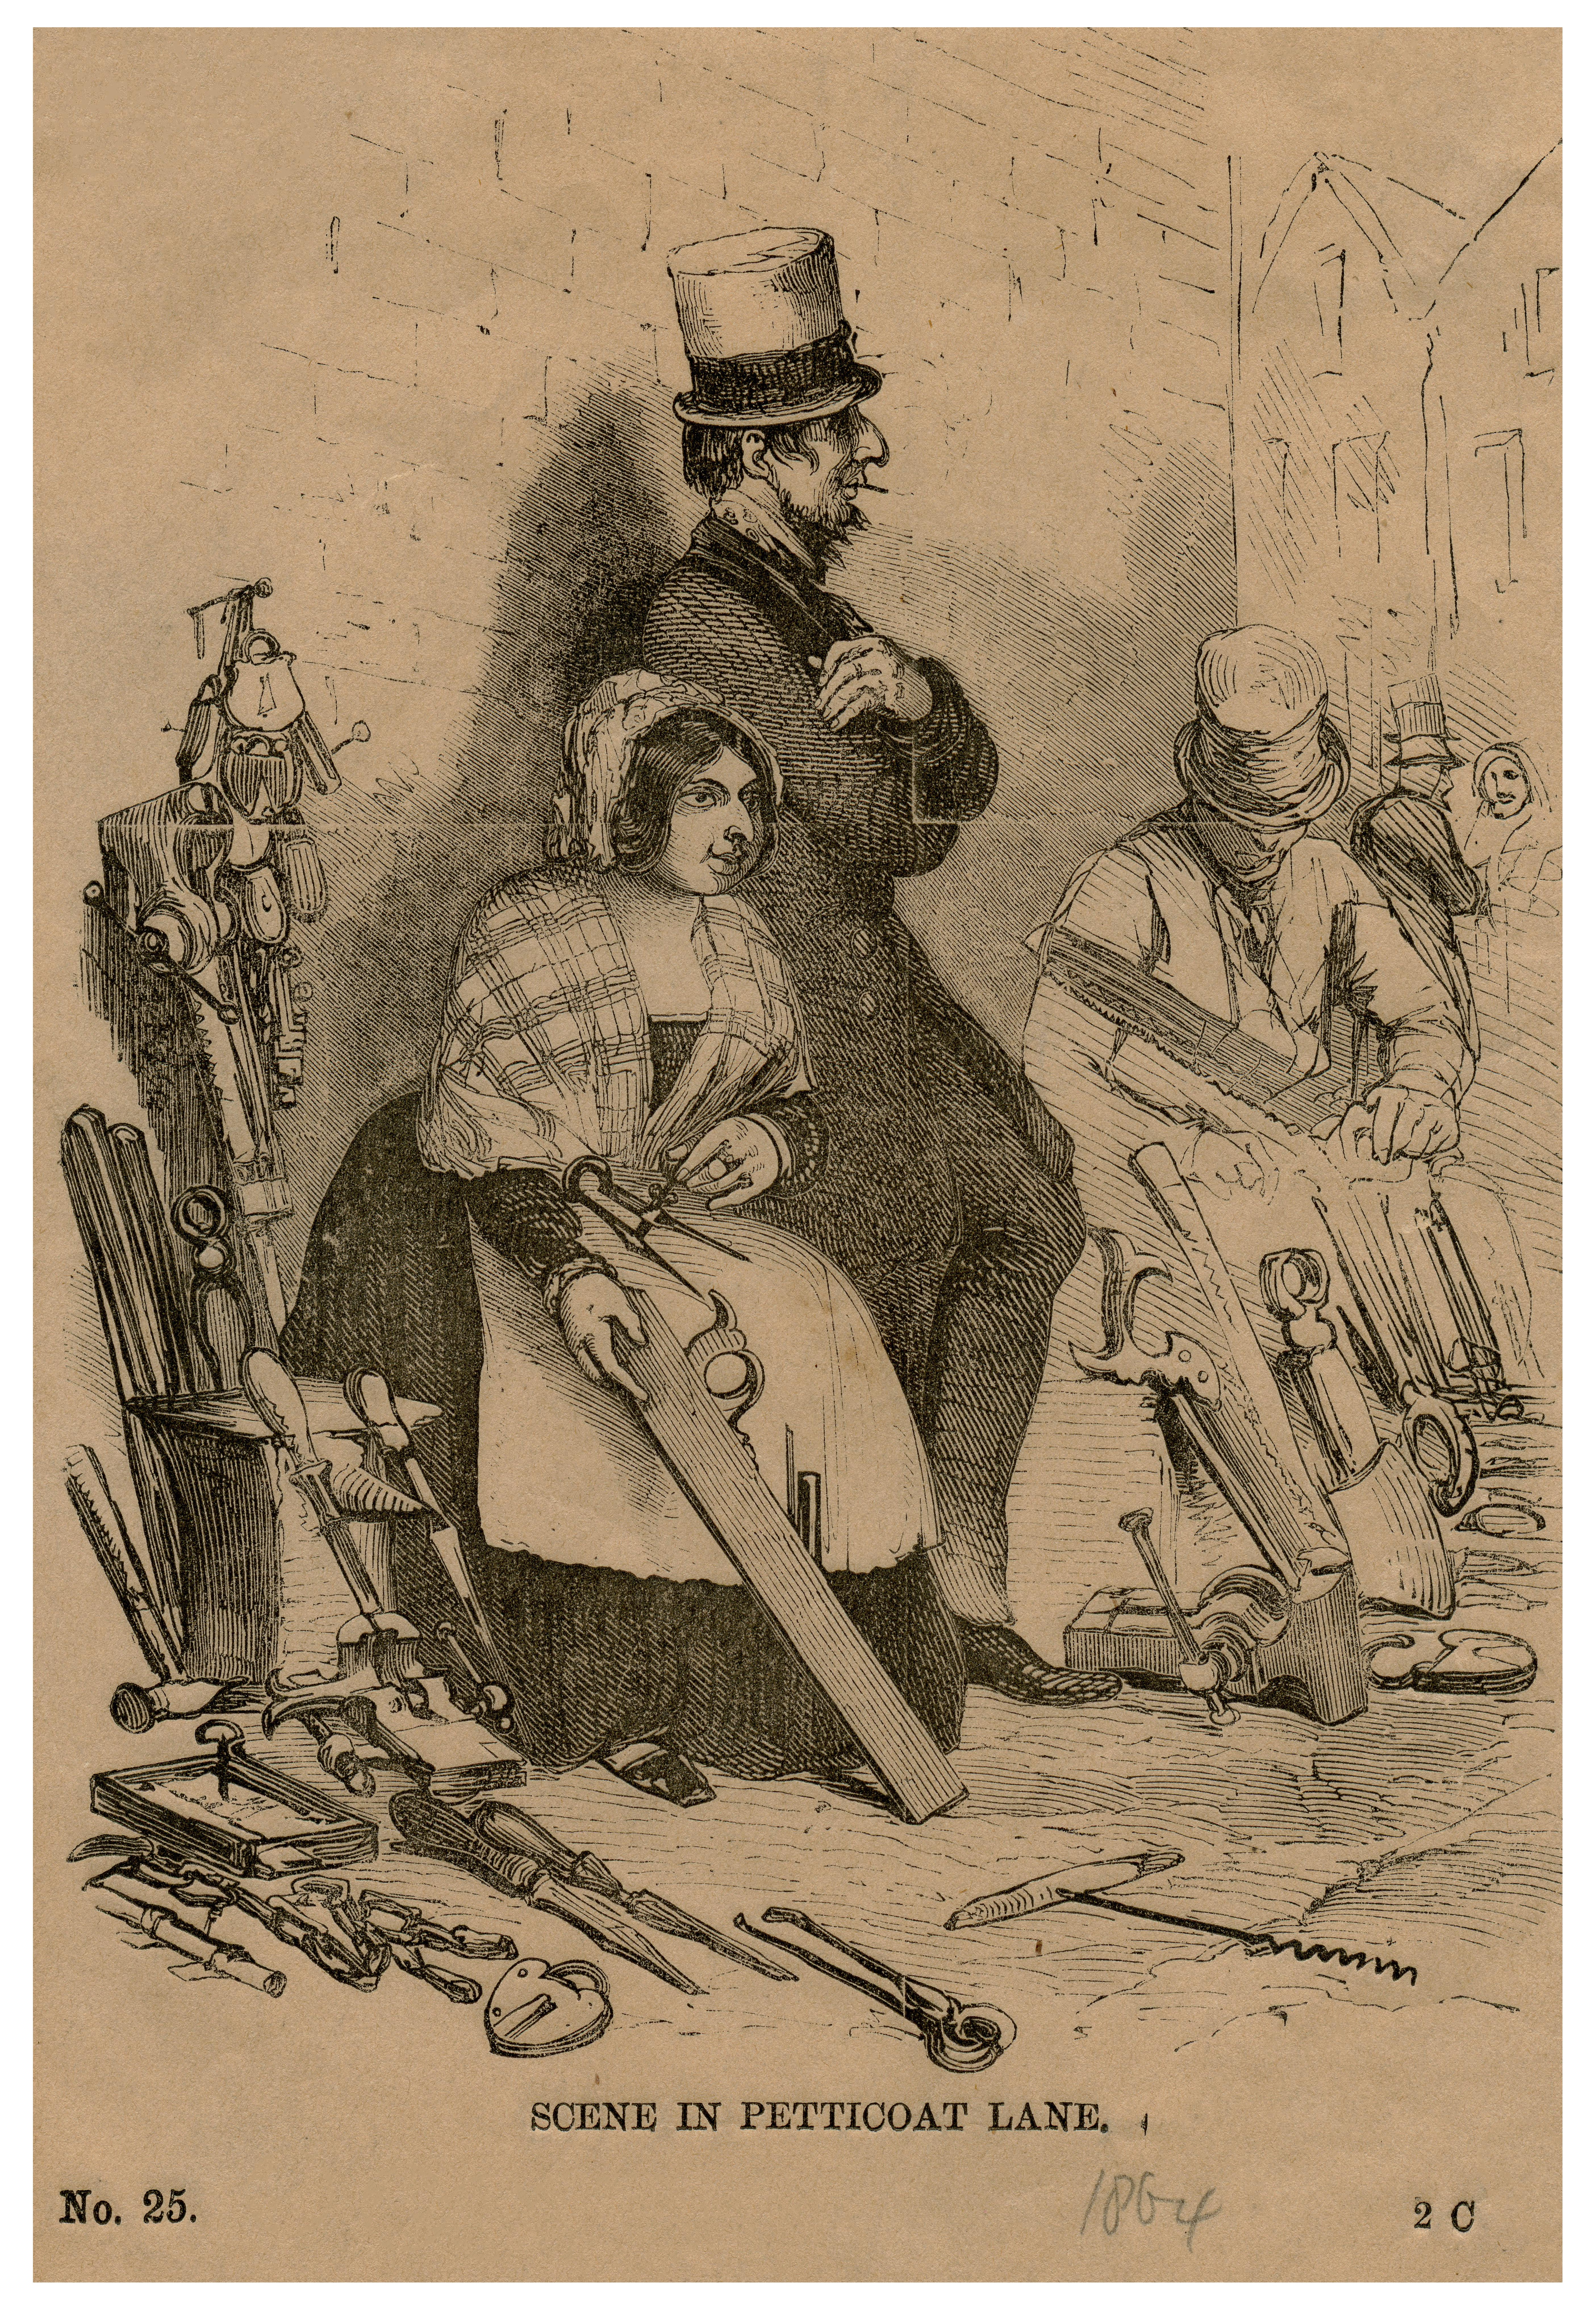 An Antique 19th Century Engraving The Tool Traders Scene In Petticoat Lane